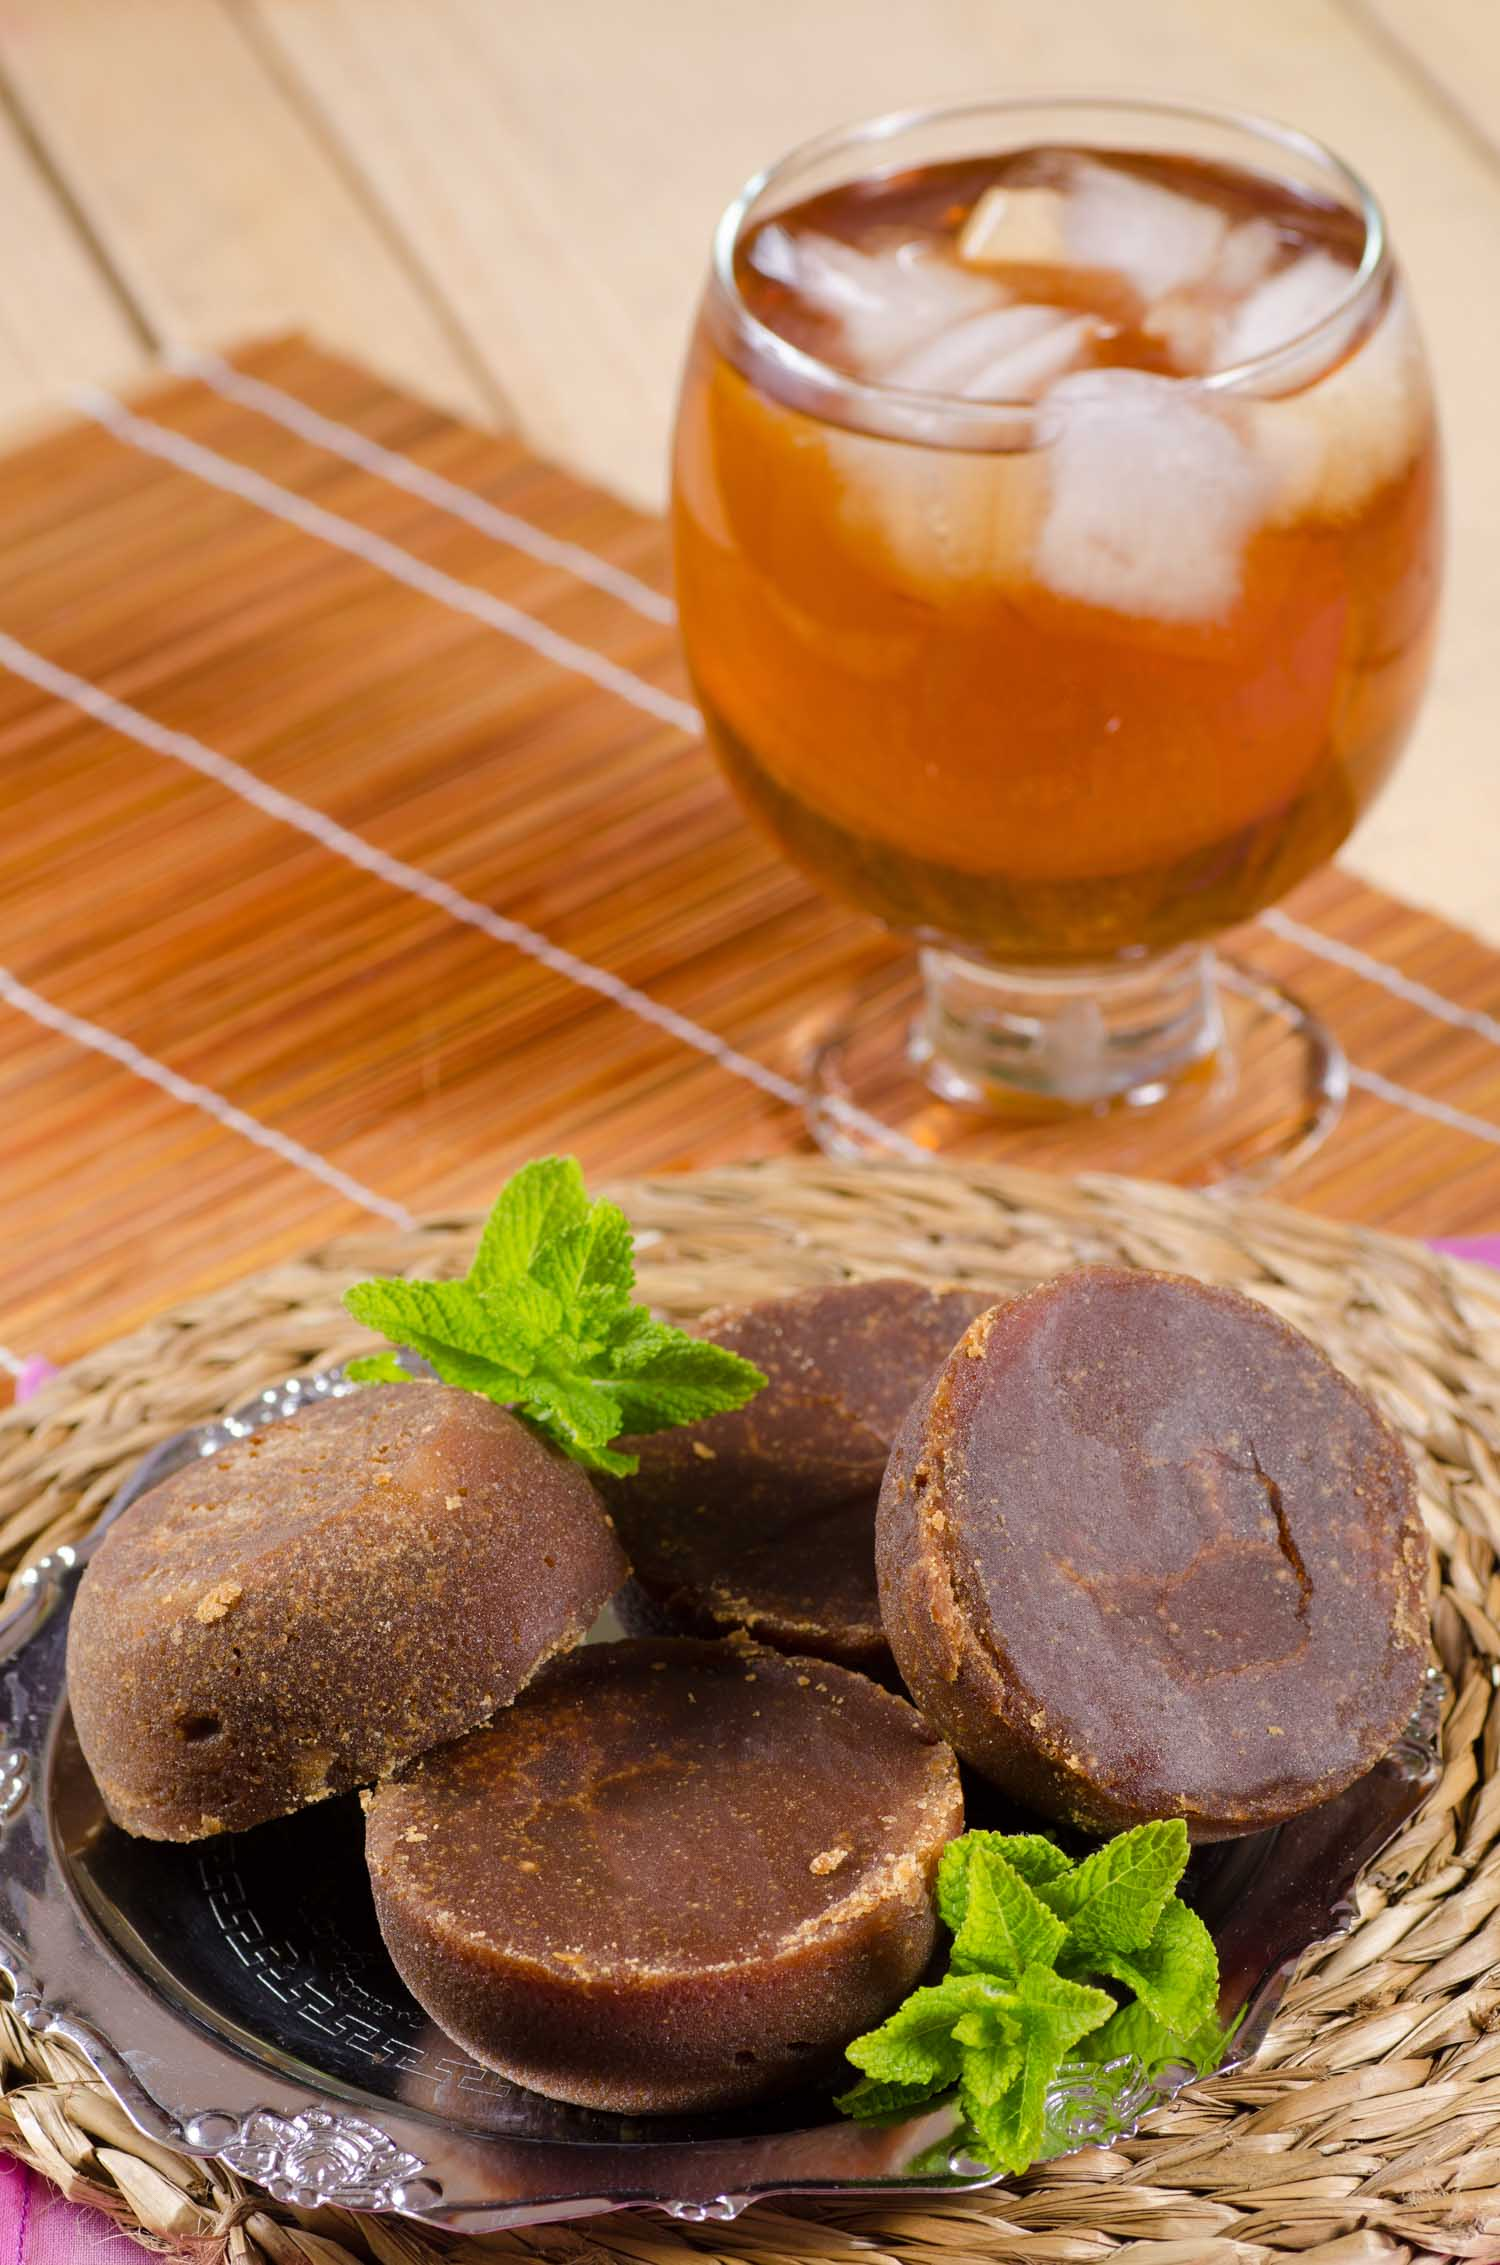 Aguapanela, traditional Latin American drink prepared with raw brown sugar panela.